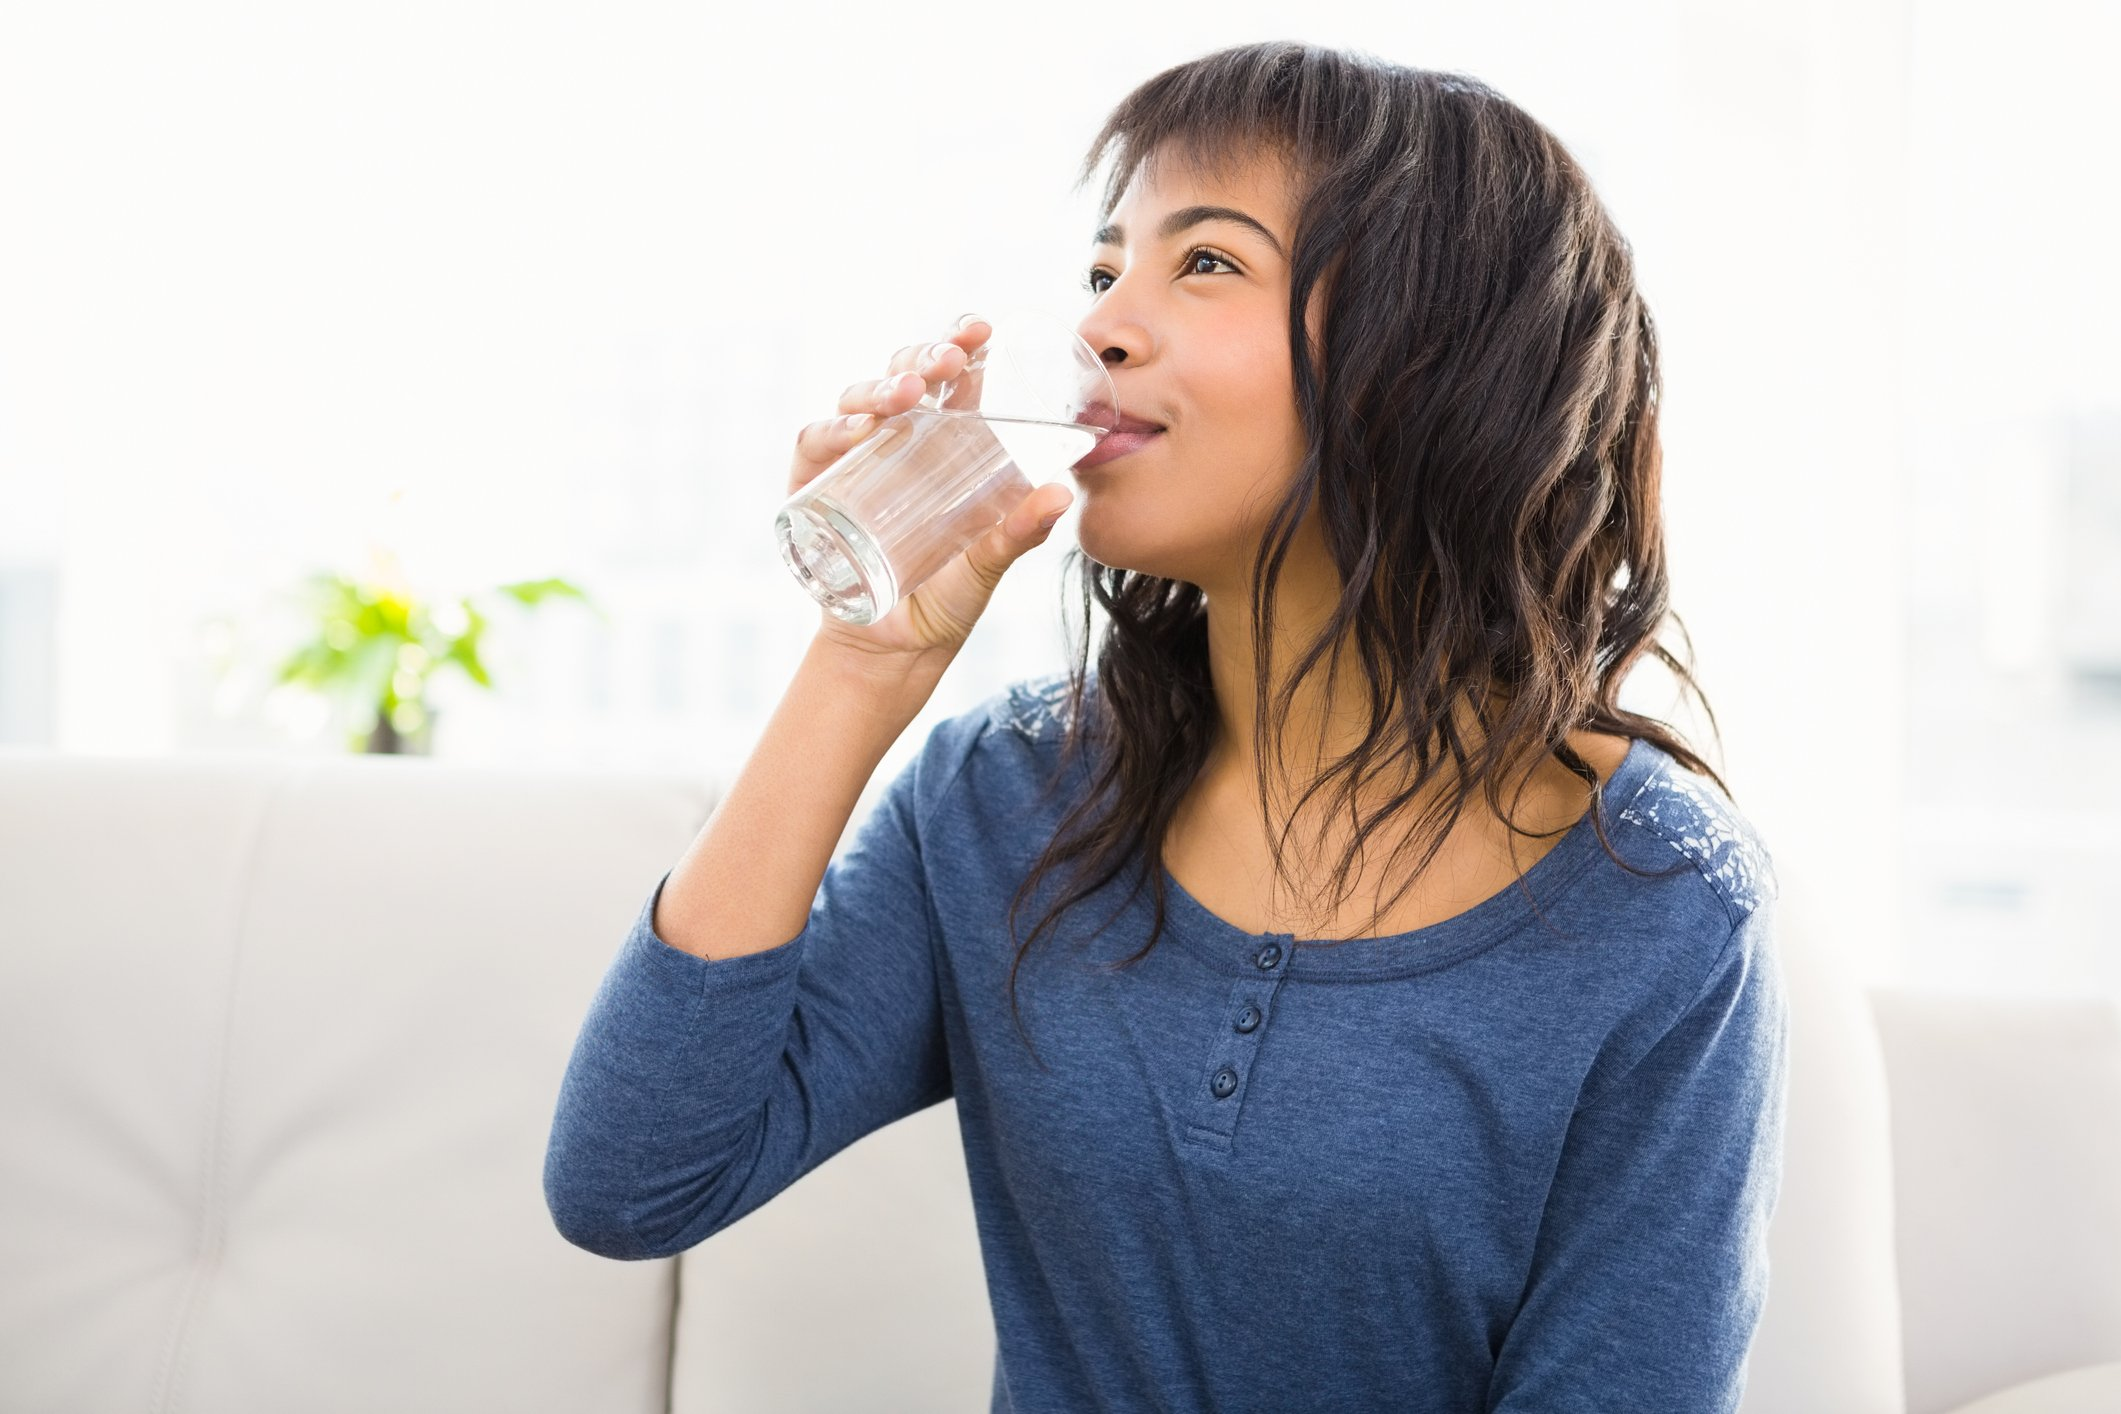 Casual smiling woman drinking some water